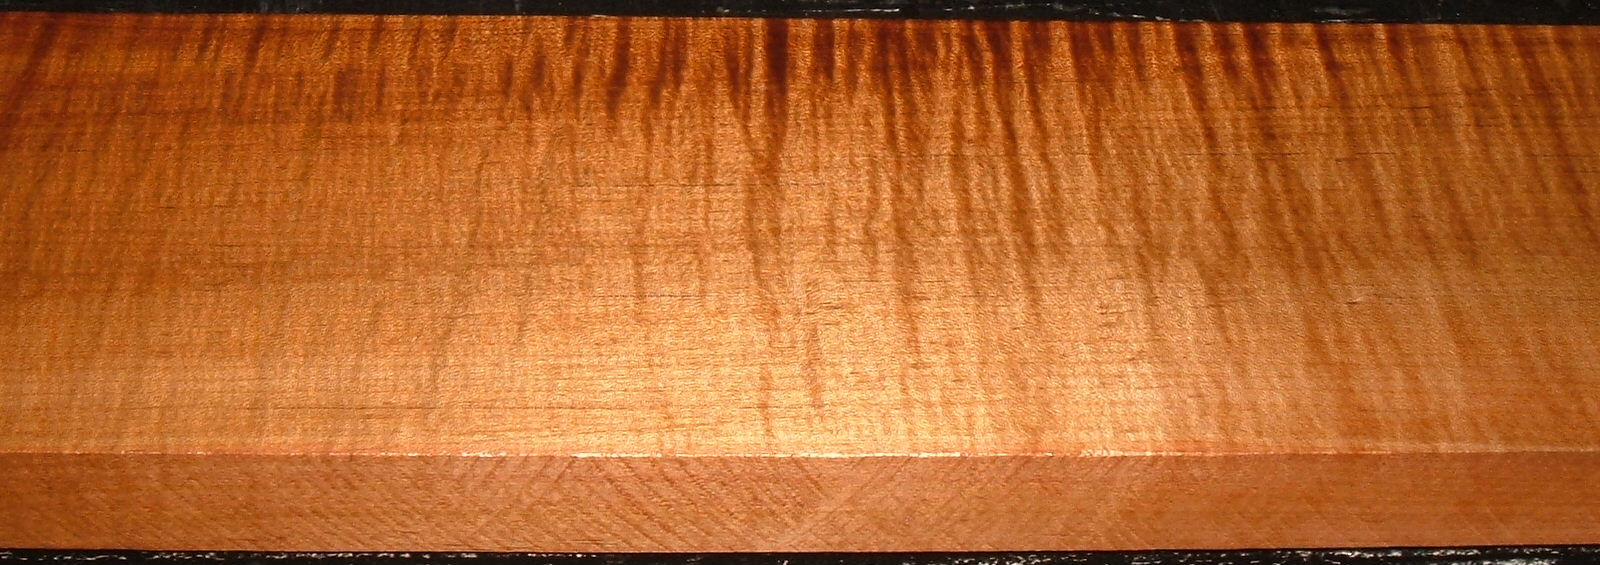 QRM2101-7JK, 1-3/16x5x46, Quartersawn Roasted Curly Maple